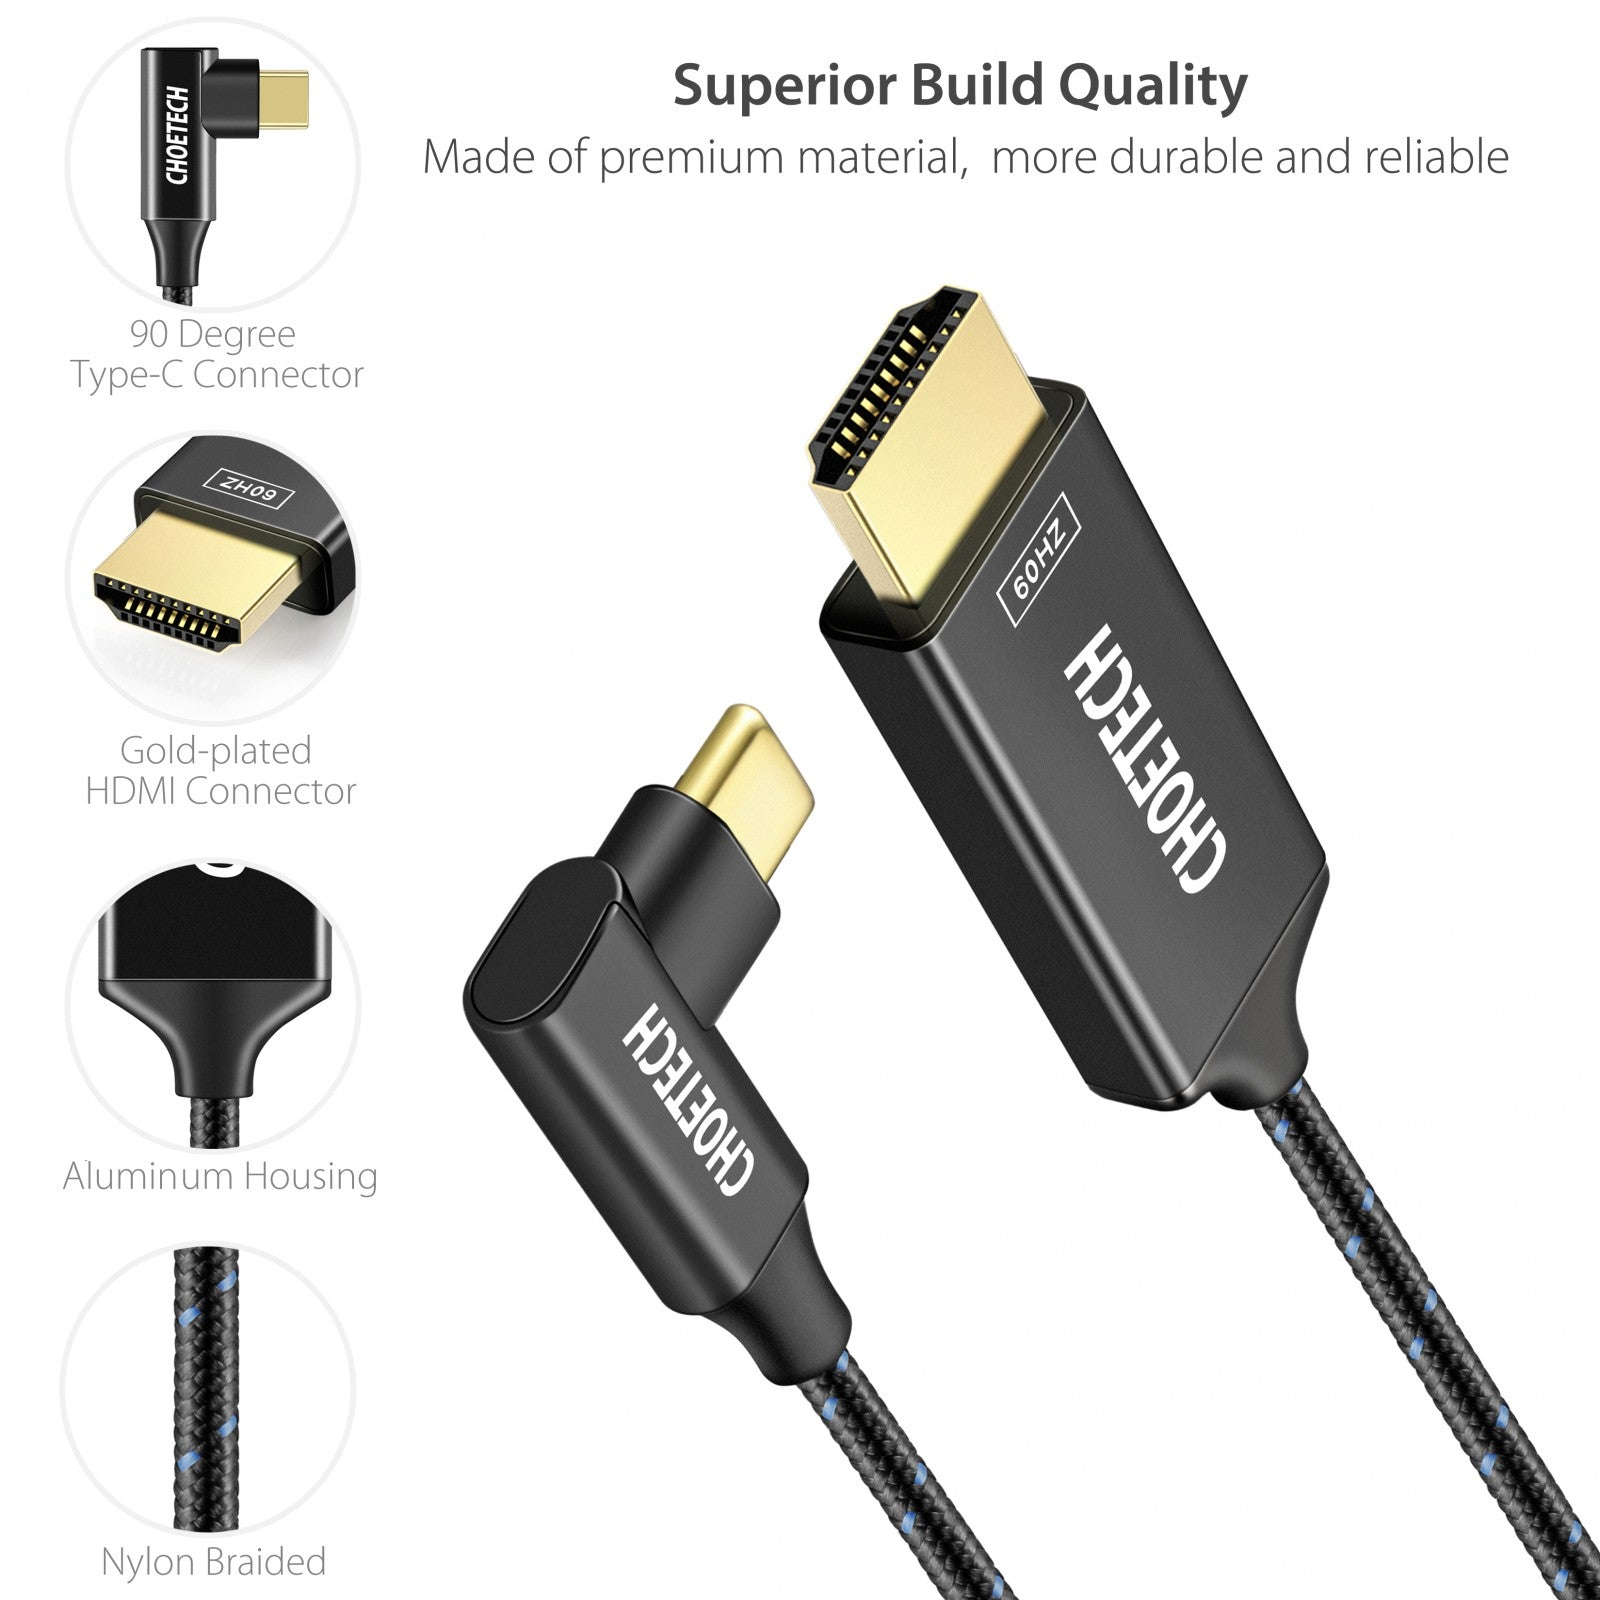 Choetech Leftright Angle 90 Degree Usb Type C To Hdmi Cable Connector Nylon Braided 4k 60hz